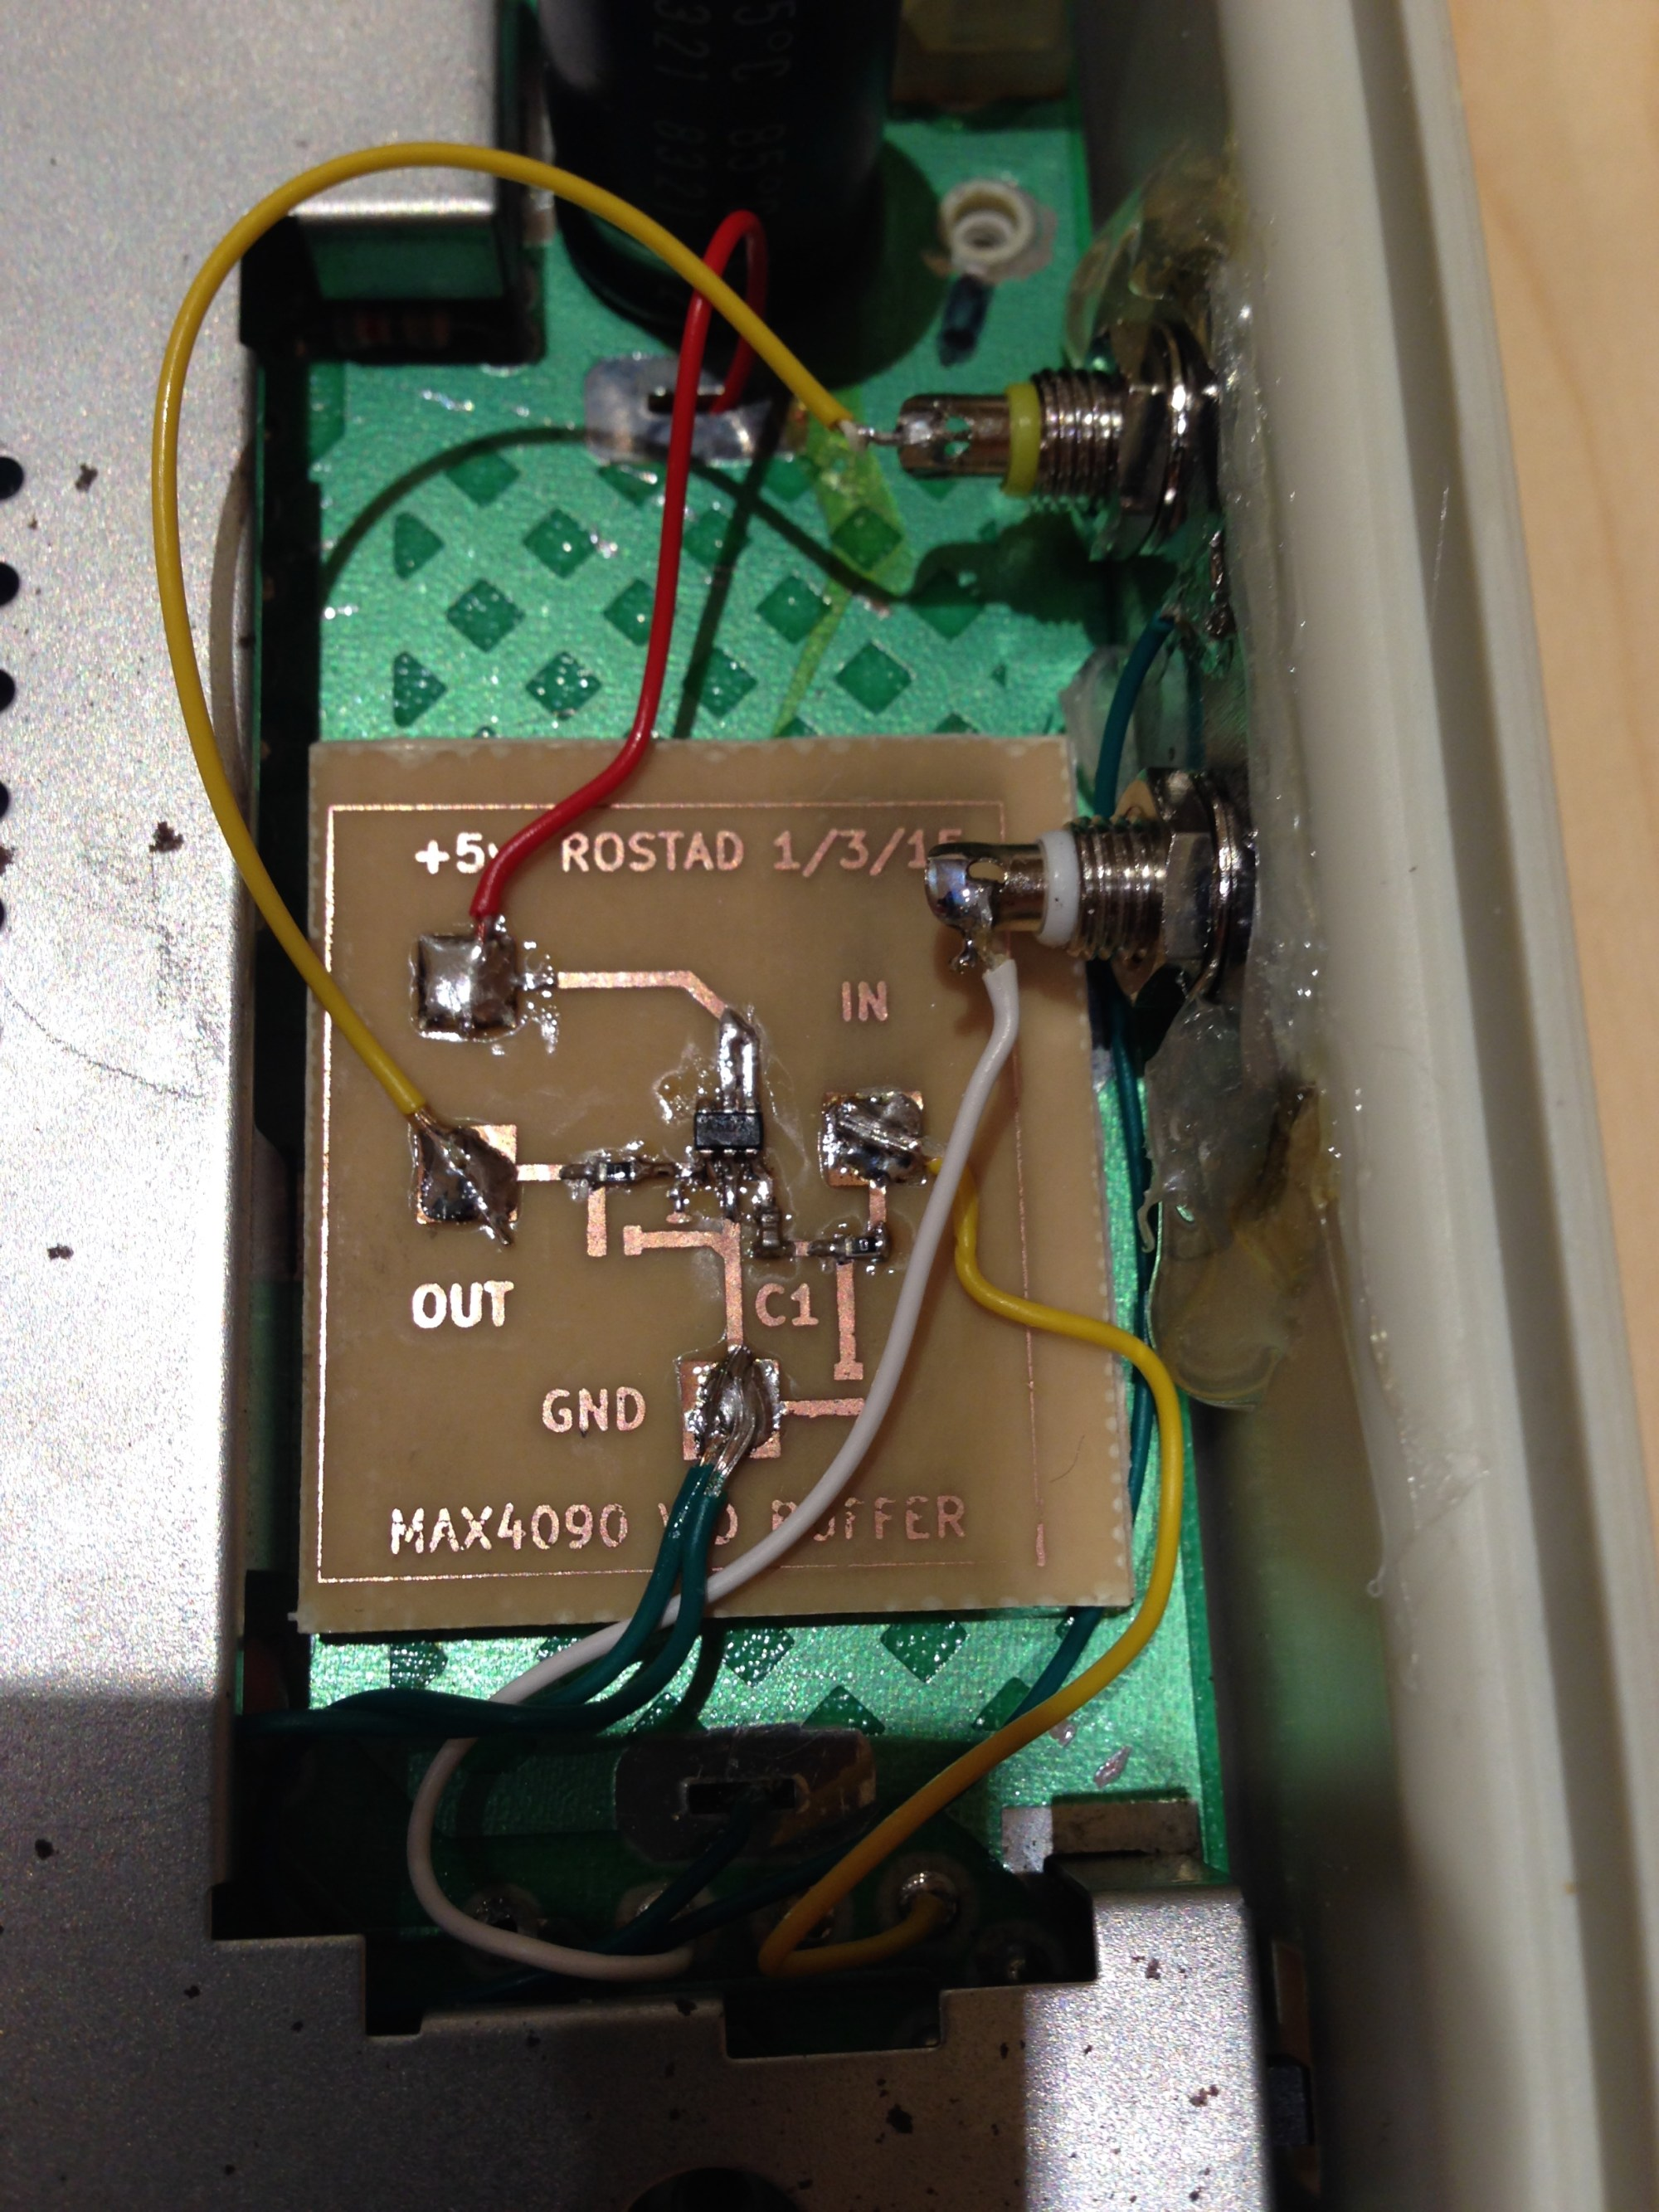 hight resolution of  wiring diagram for here s the breakout board installed in the aquarius fits where the rf modulator was